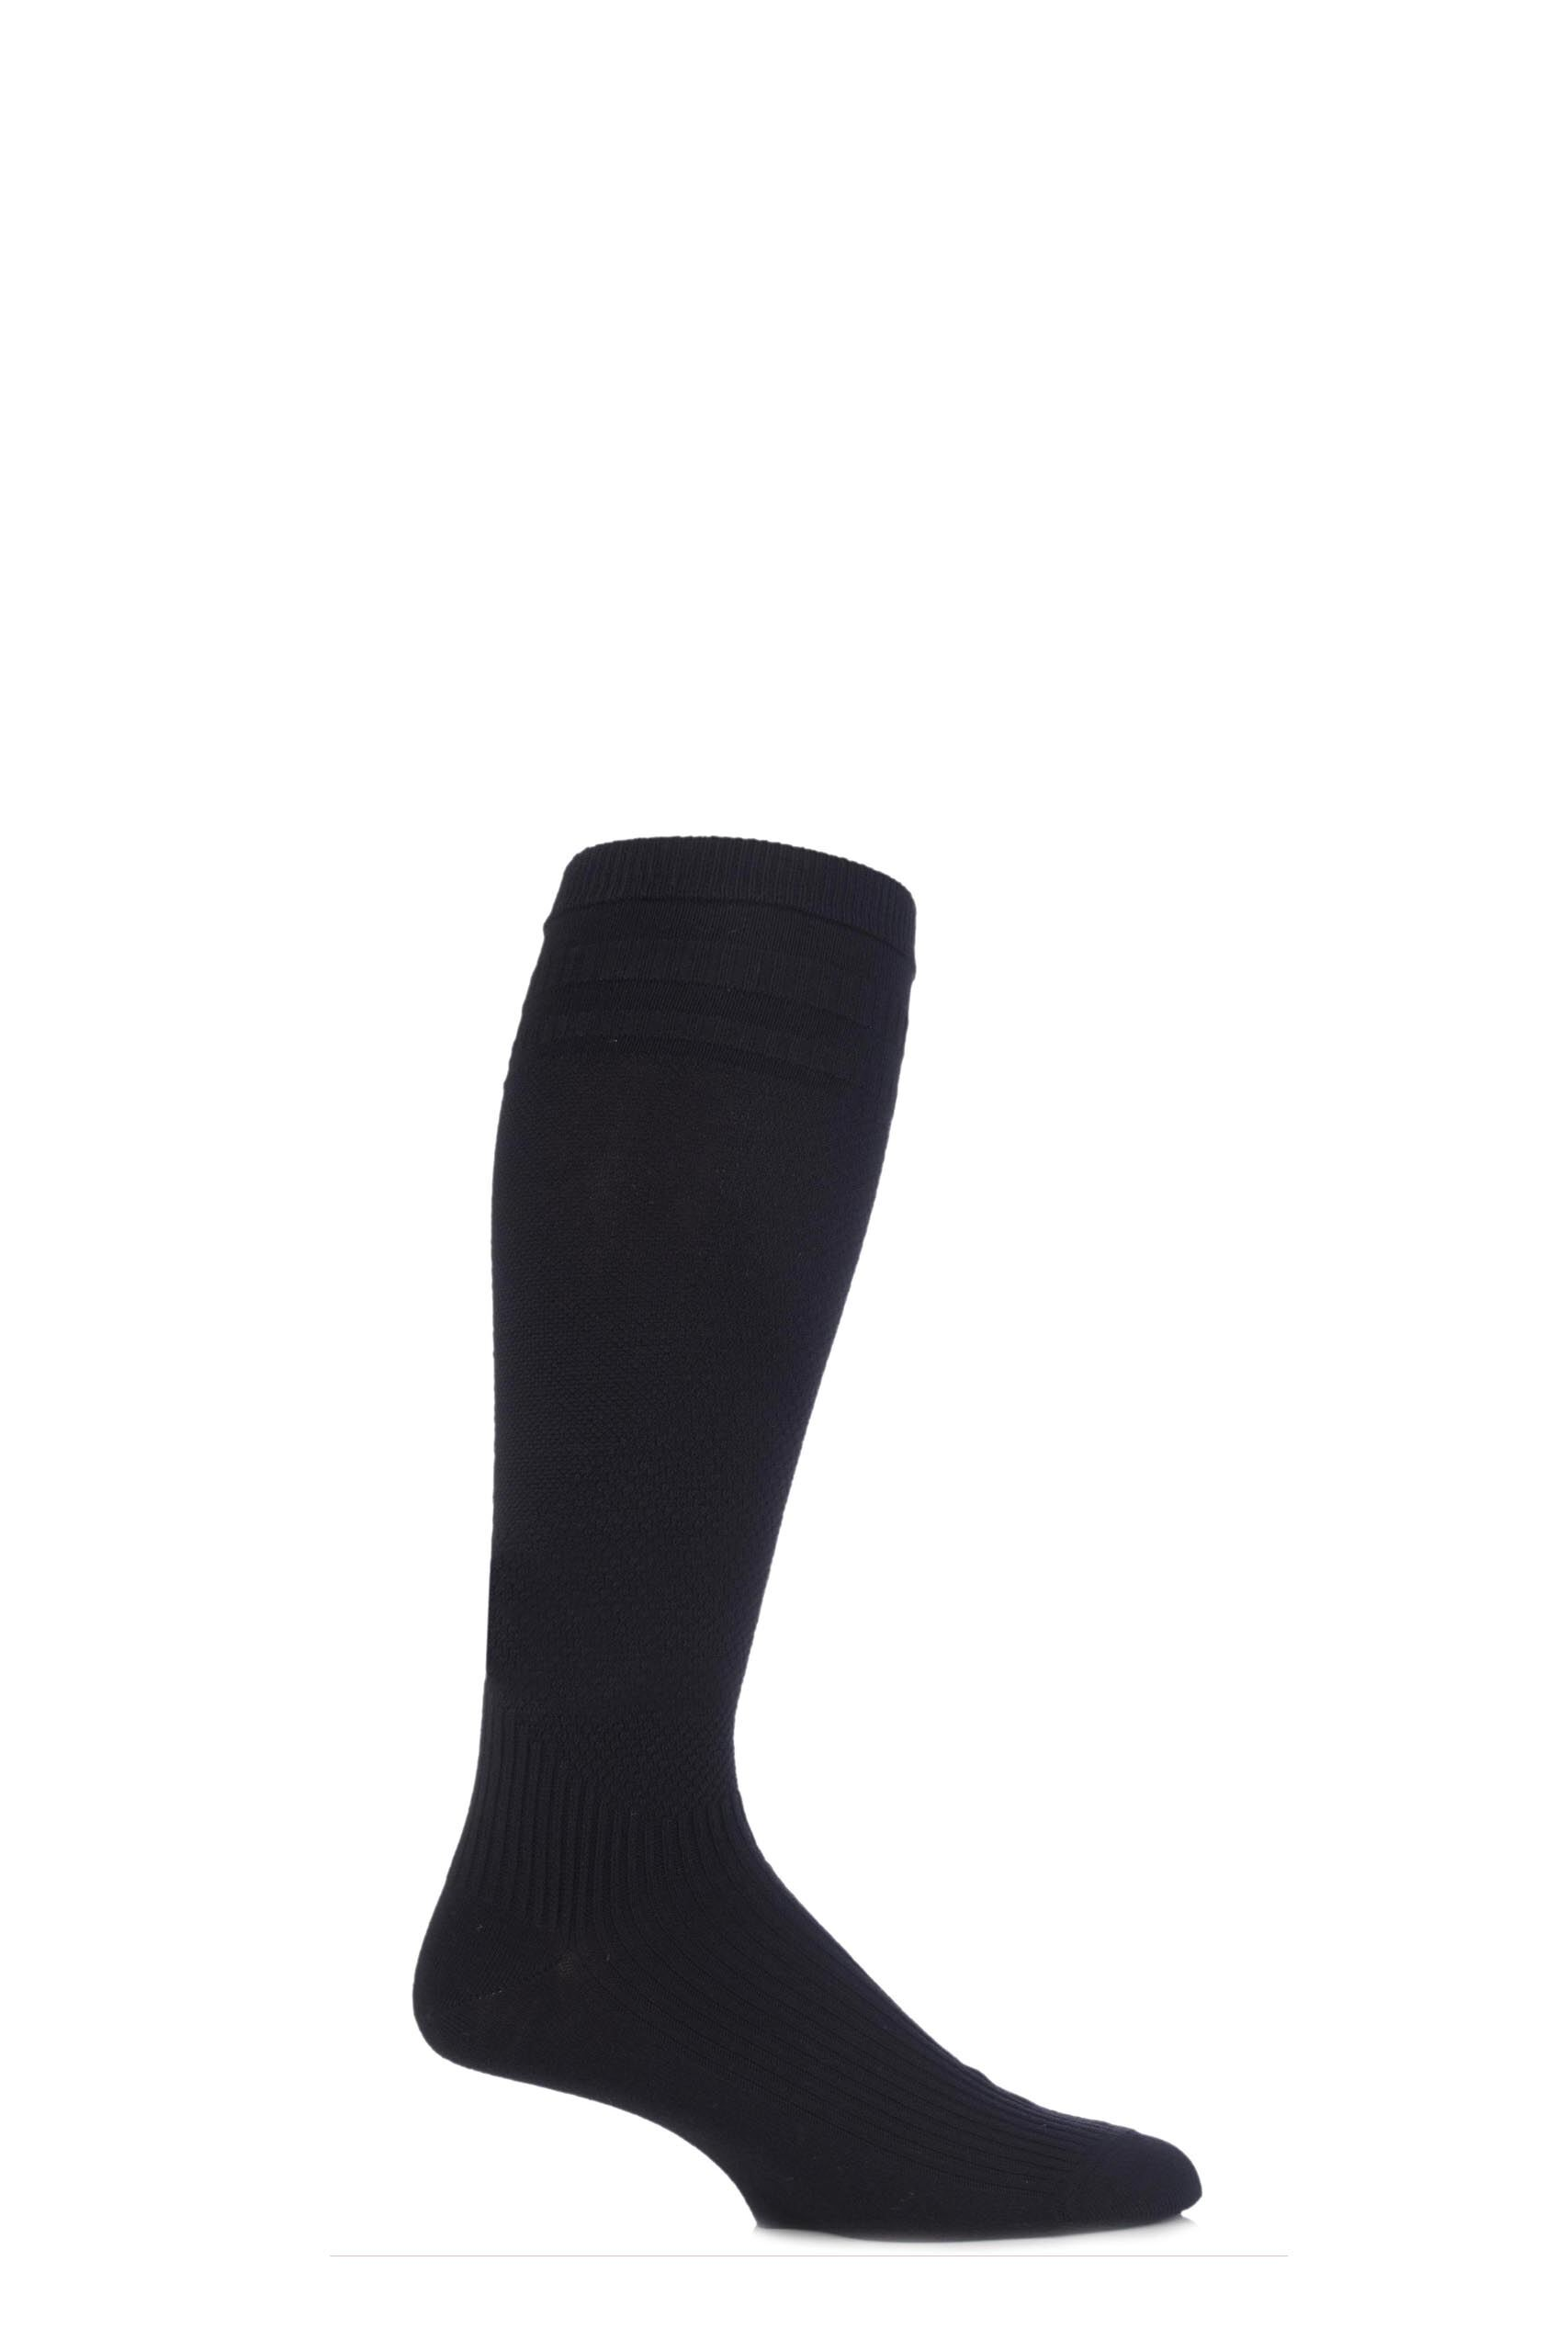 Image of 1 Pair Black Energisox Compression Socks with Softop Men's 6-9 Mens - HJ Hall